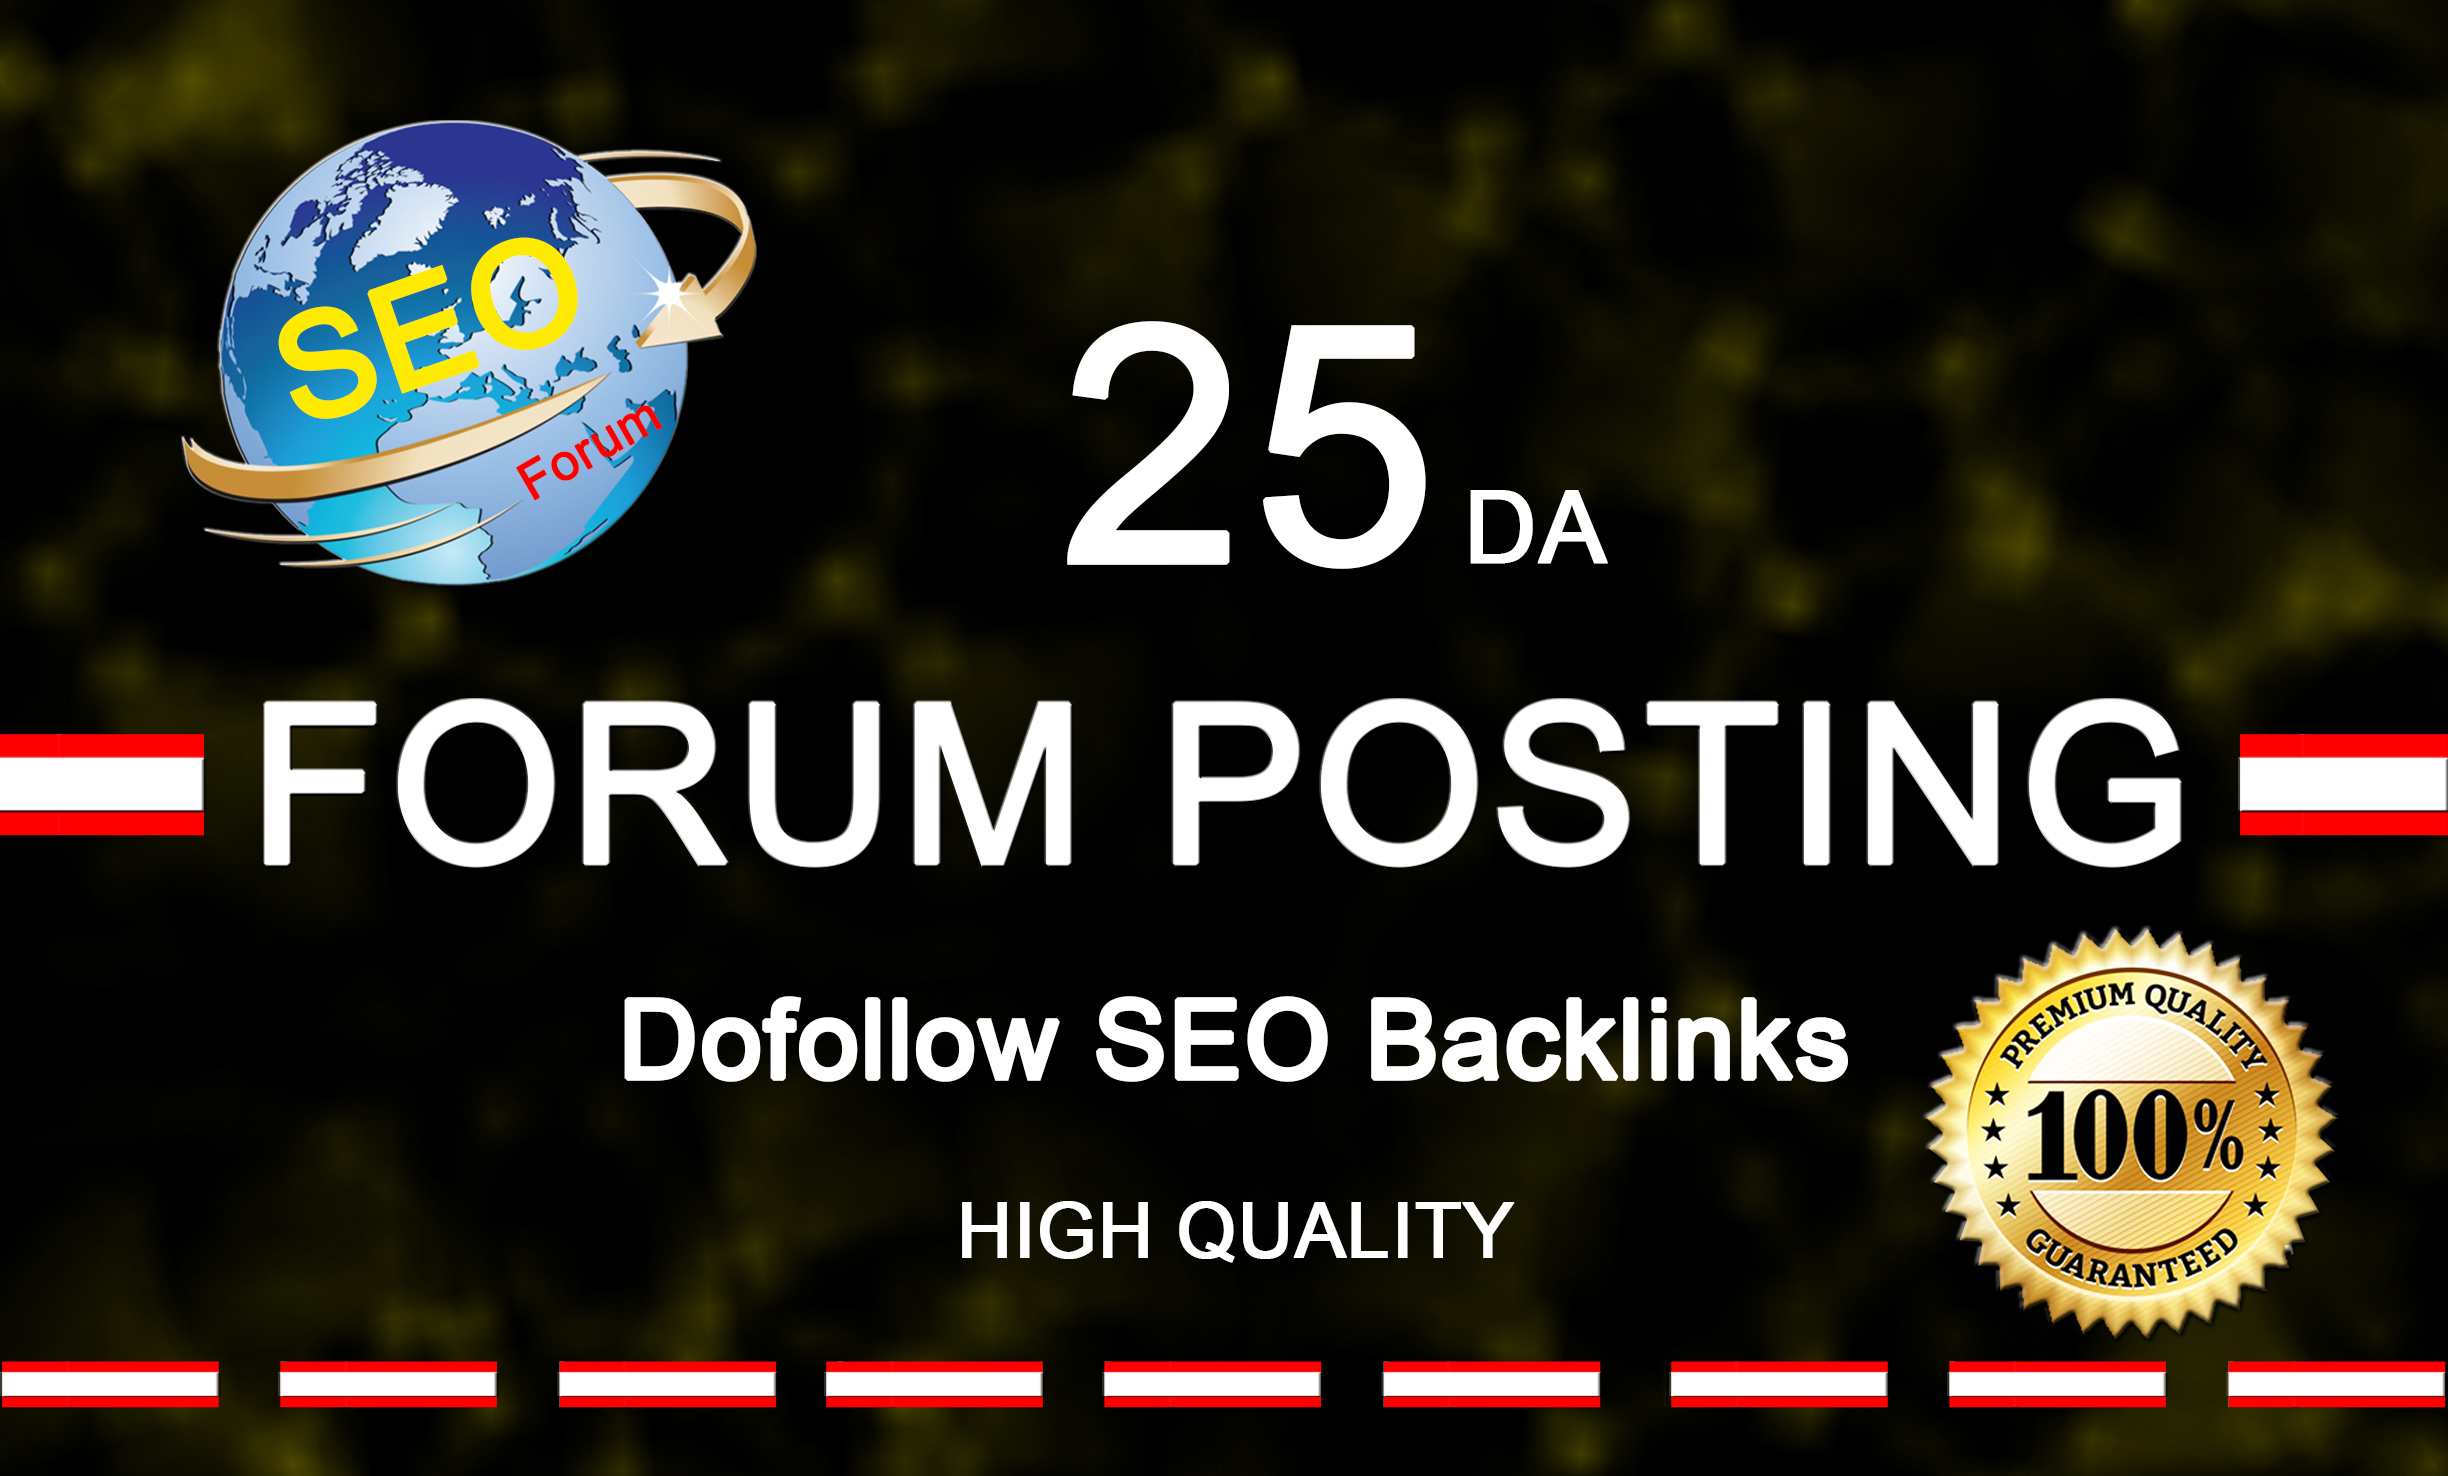 I will do 25da forum posting manauly on worldwide forums